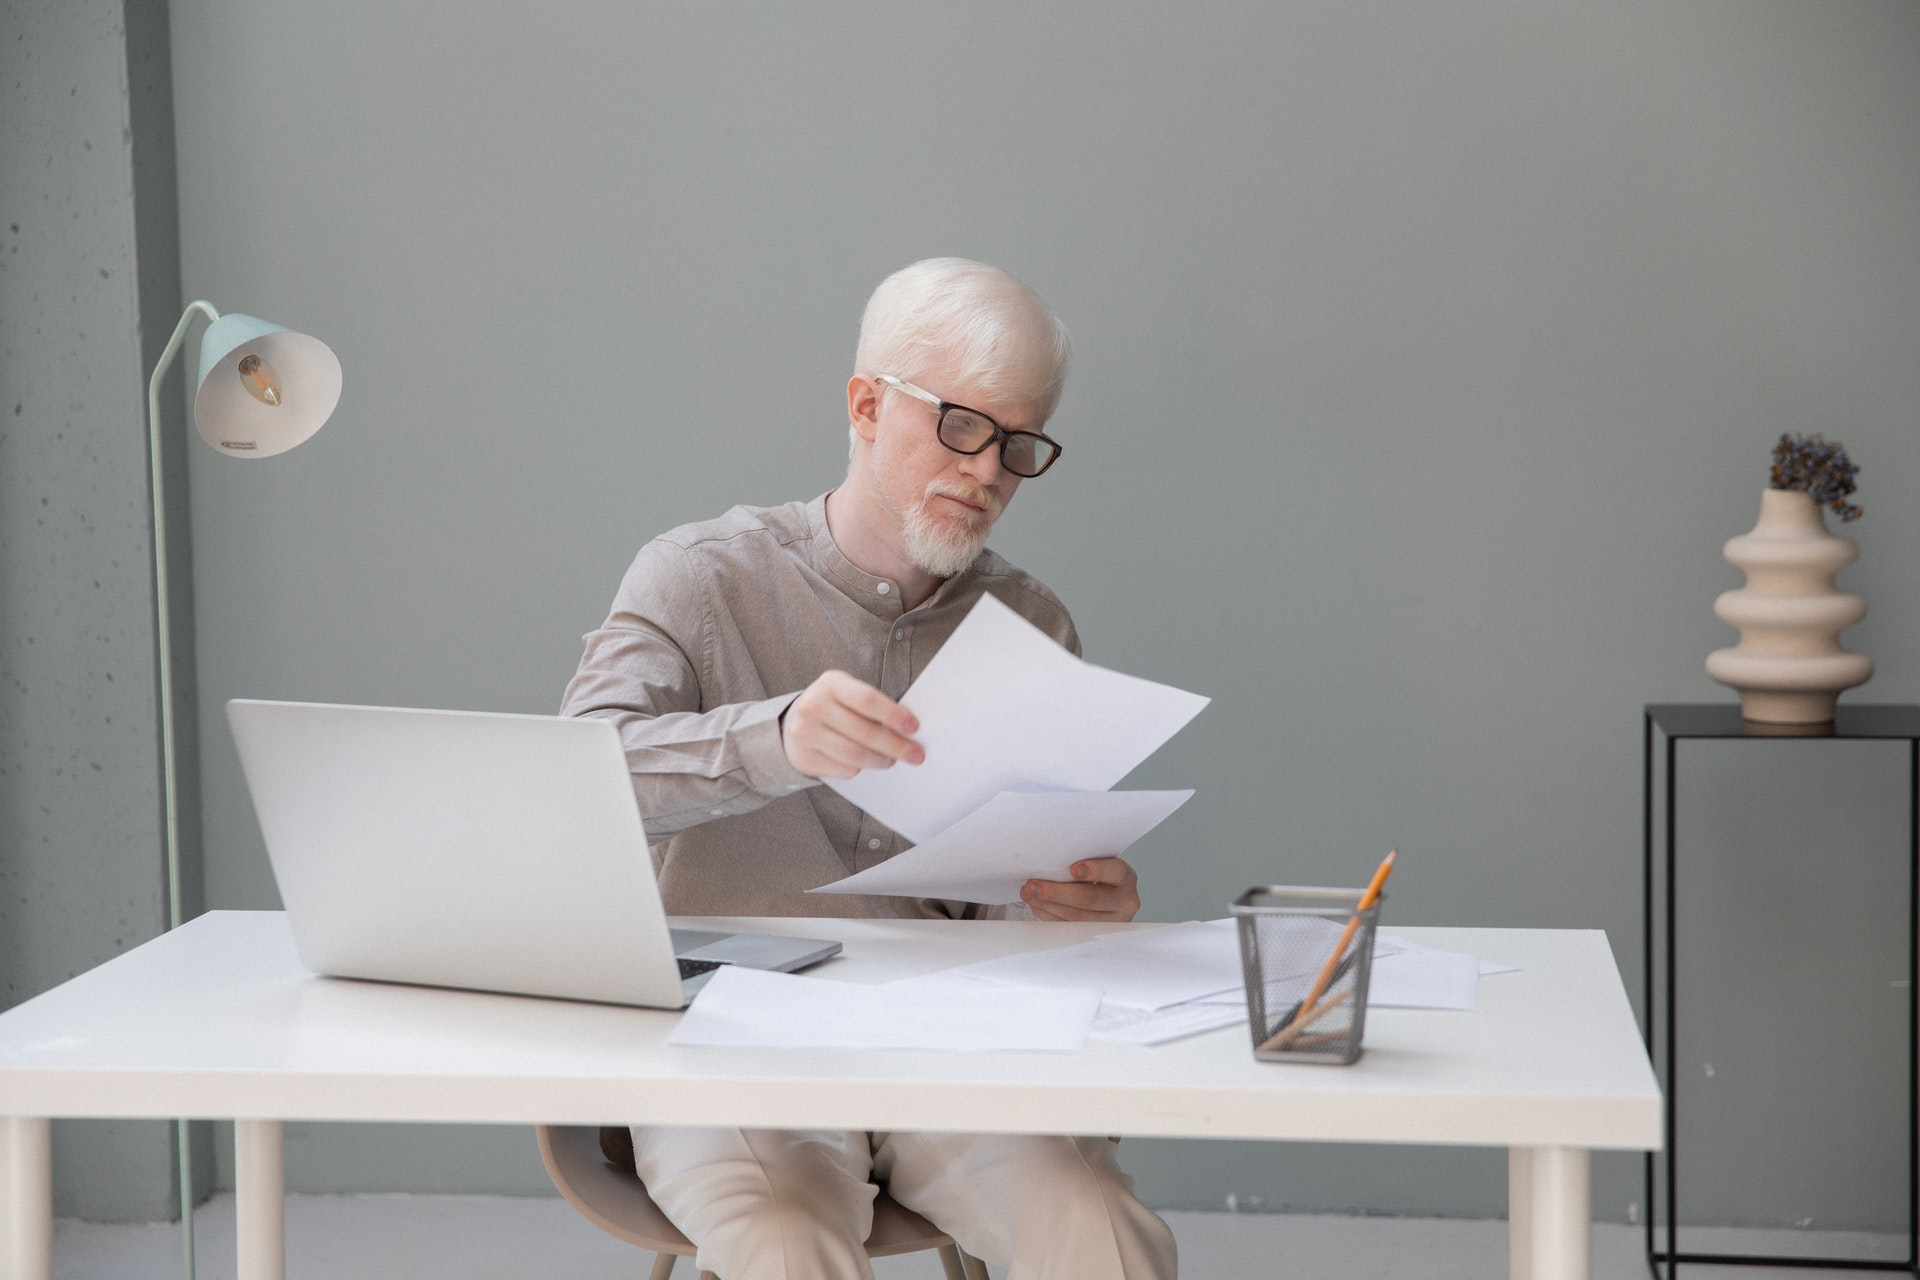 man with white hair reading a paper